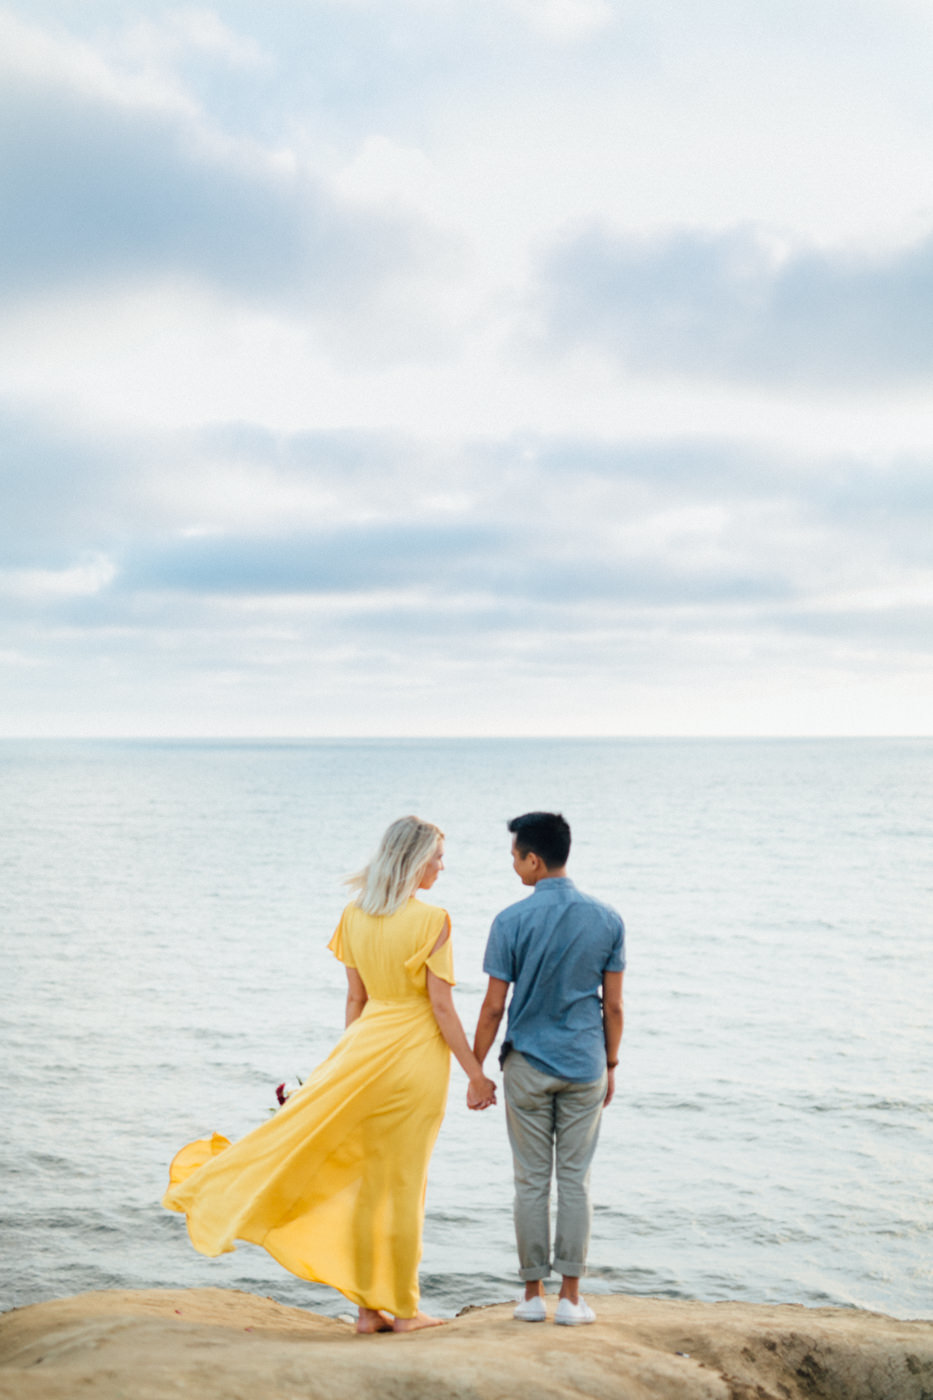 EngagementPhoto Session in Sunset Cliffs Park